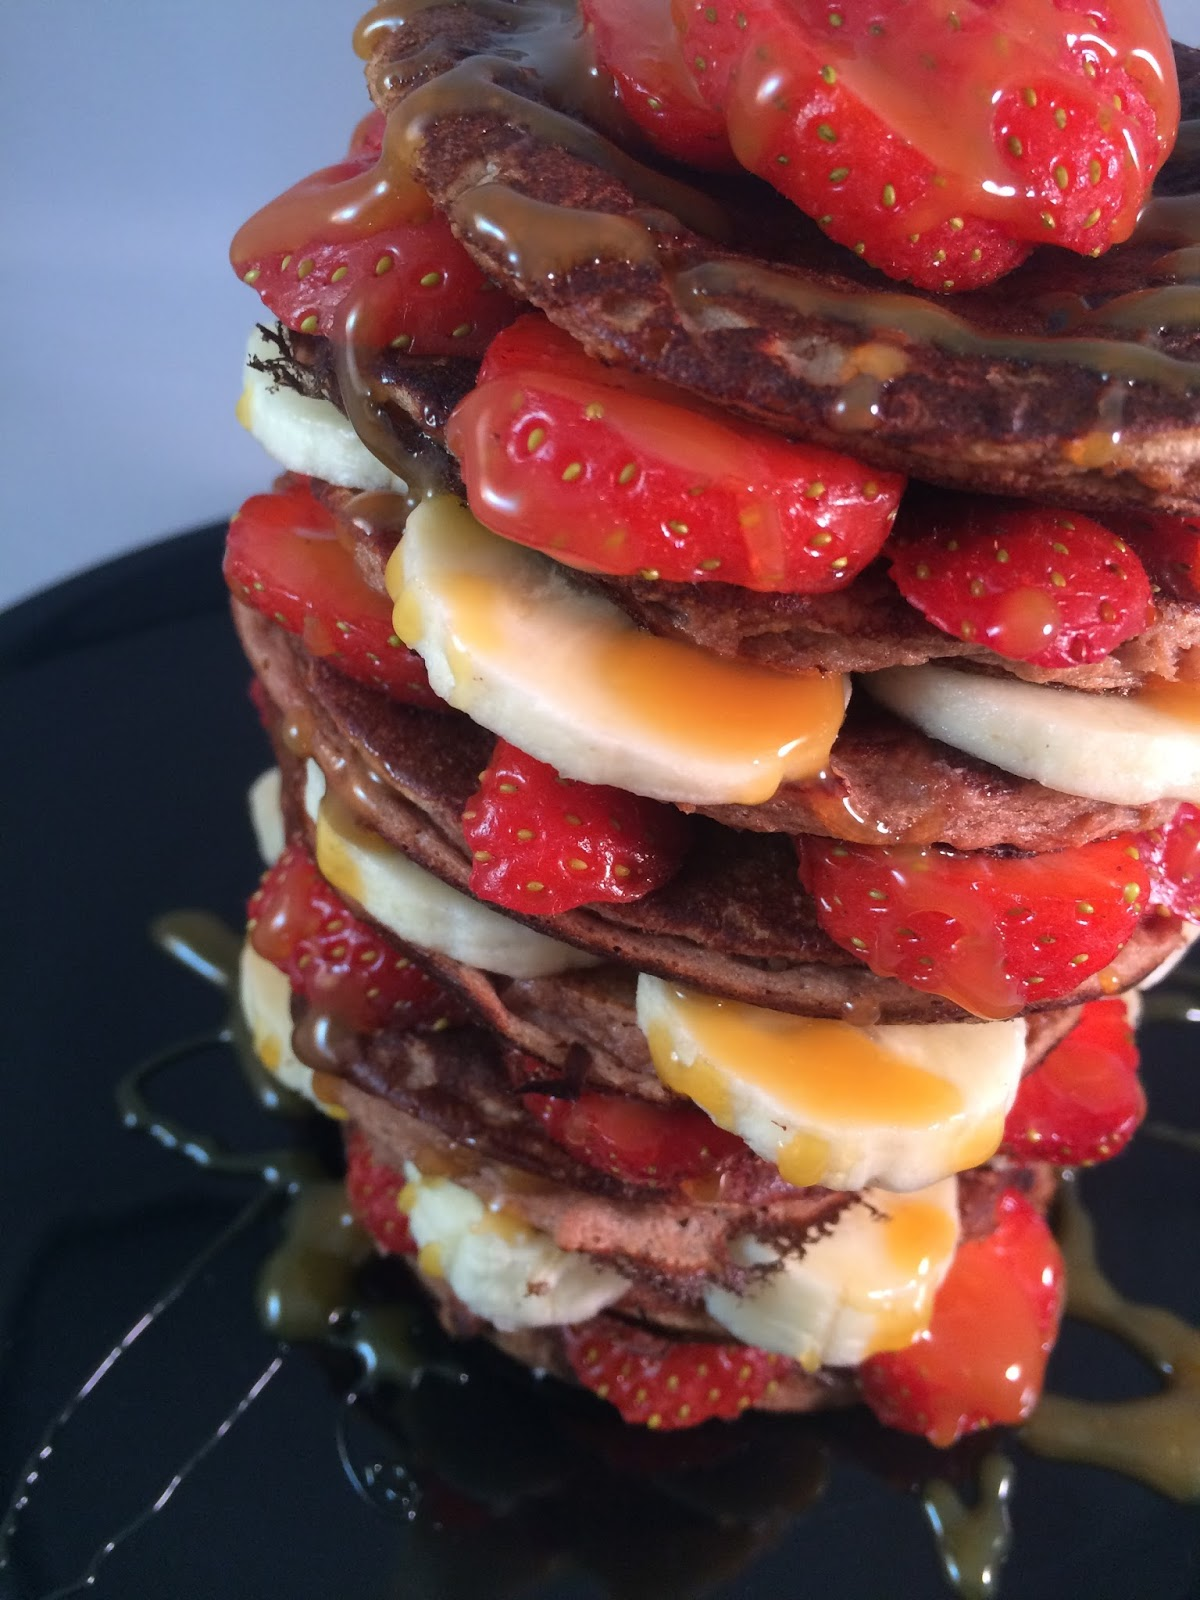 chocolate banana strawberry sci-mx protein pancake stack with toffee sauce recipe